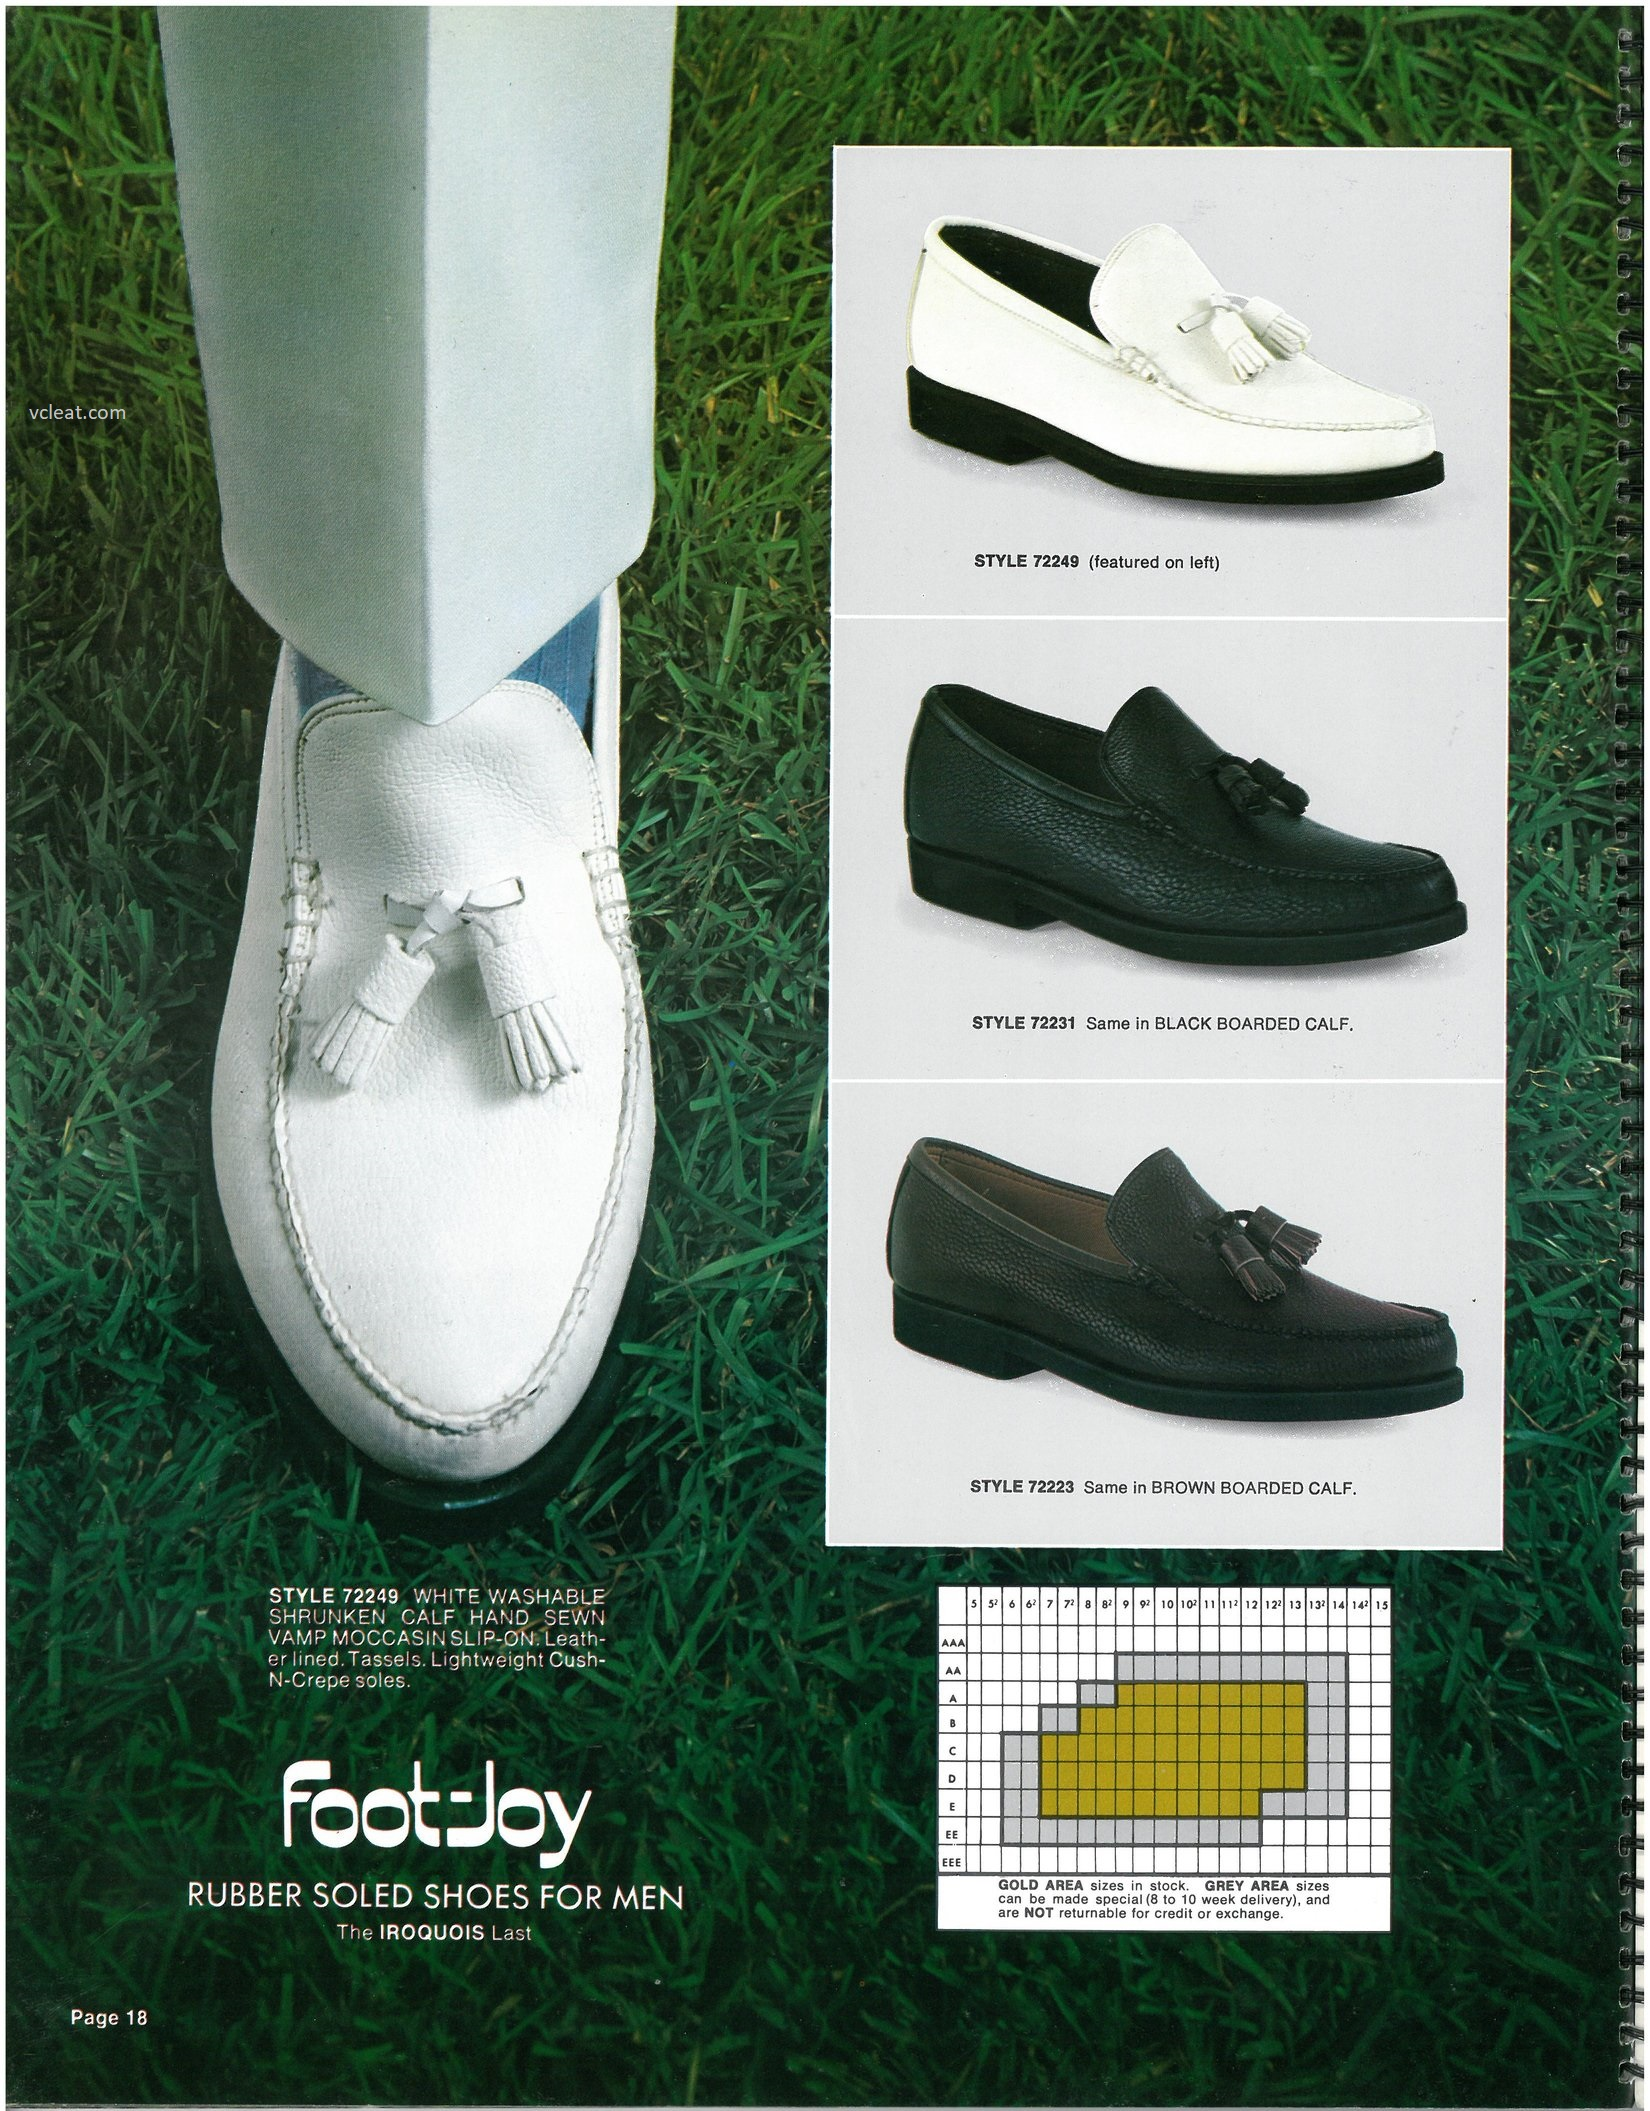 Foot-Joy Loafer 72249 72231 72223